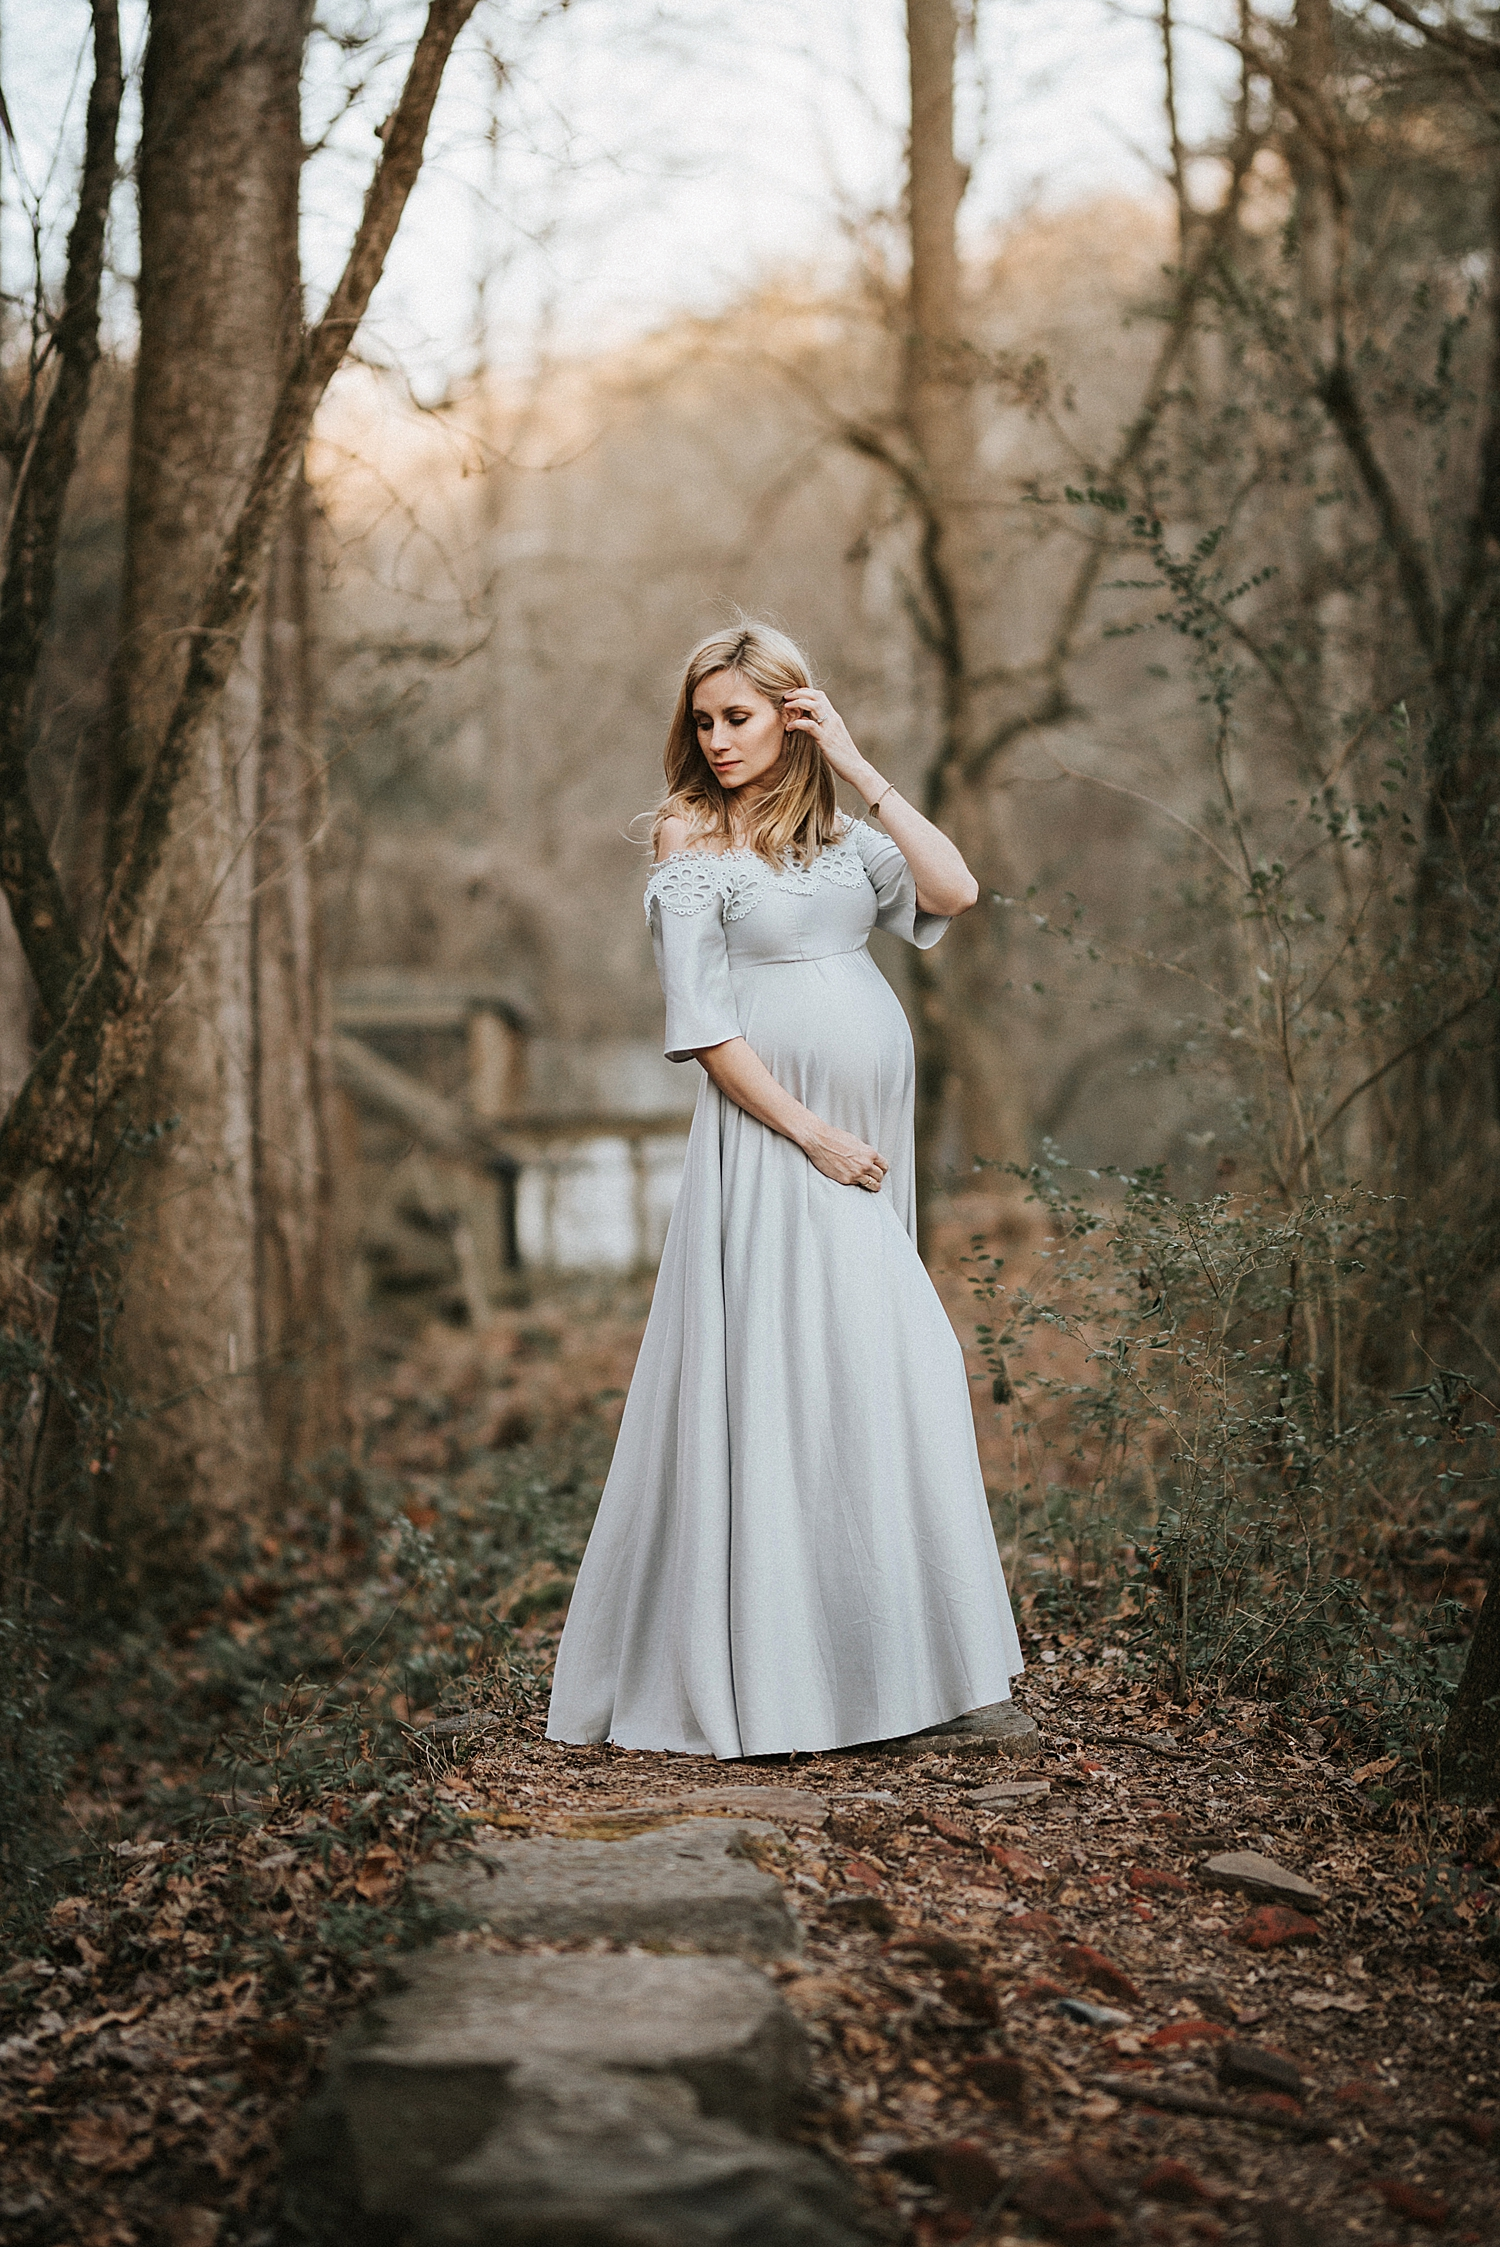 maternity-dress-katyavilchyk-atlanta-maternity-photographer-2.jpg